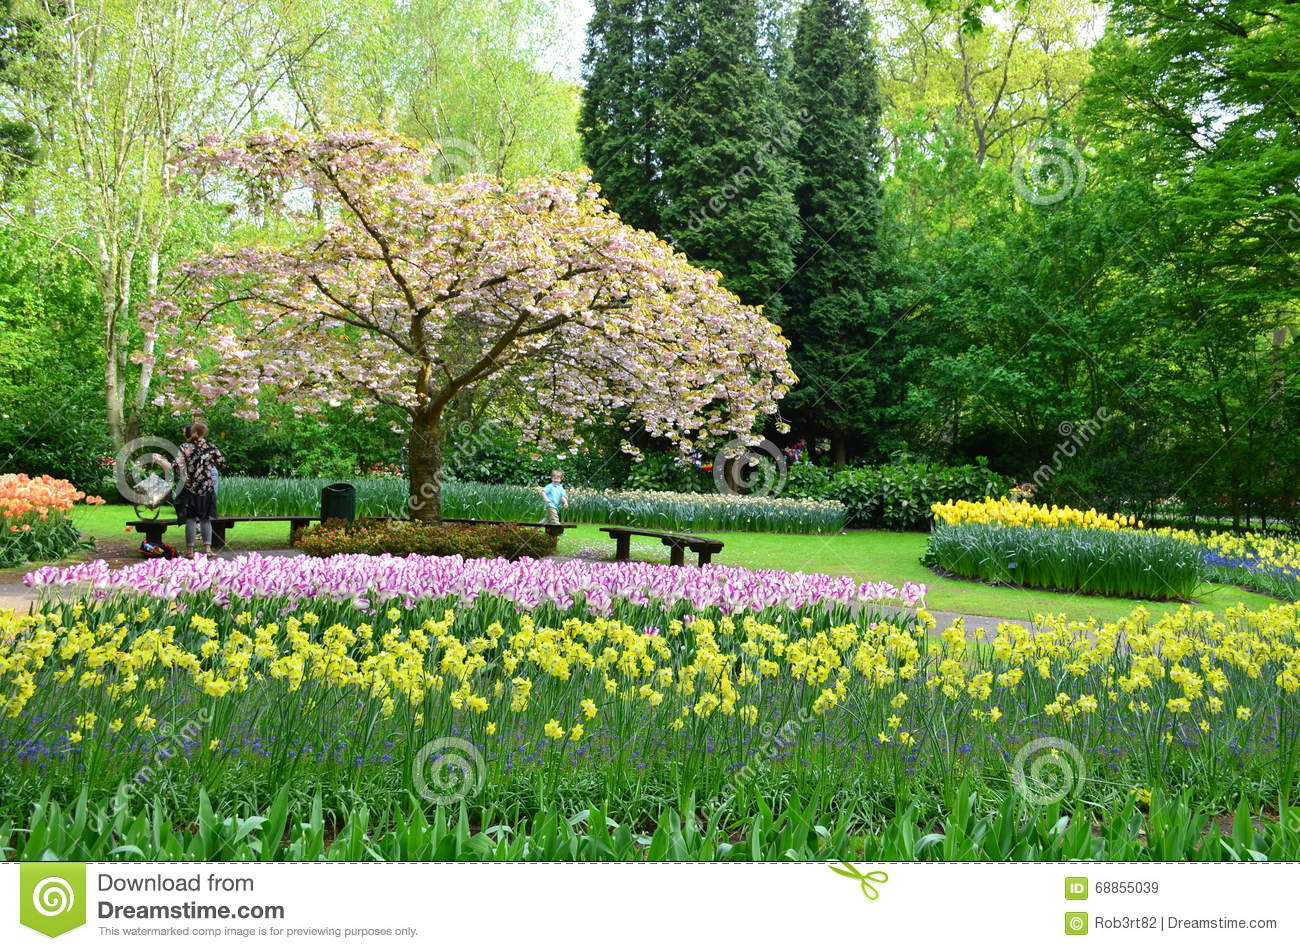 Colorful flowers and blossom in dutch spring garden keukenhof which download colorful flowers and blossom in dutch spring garden keukenhof which is the worlds largest flower izmirmasajfo